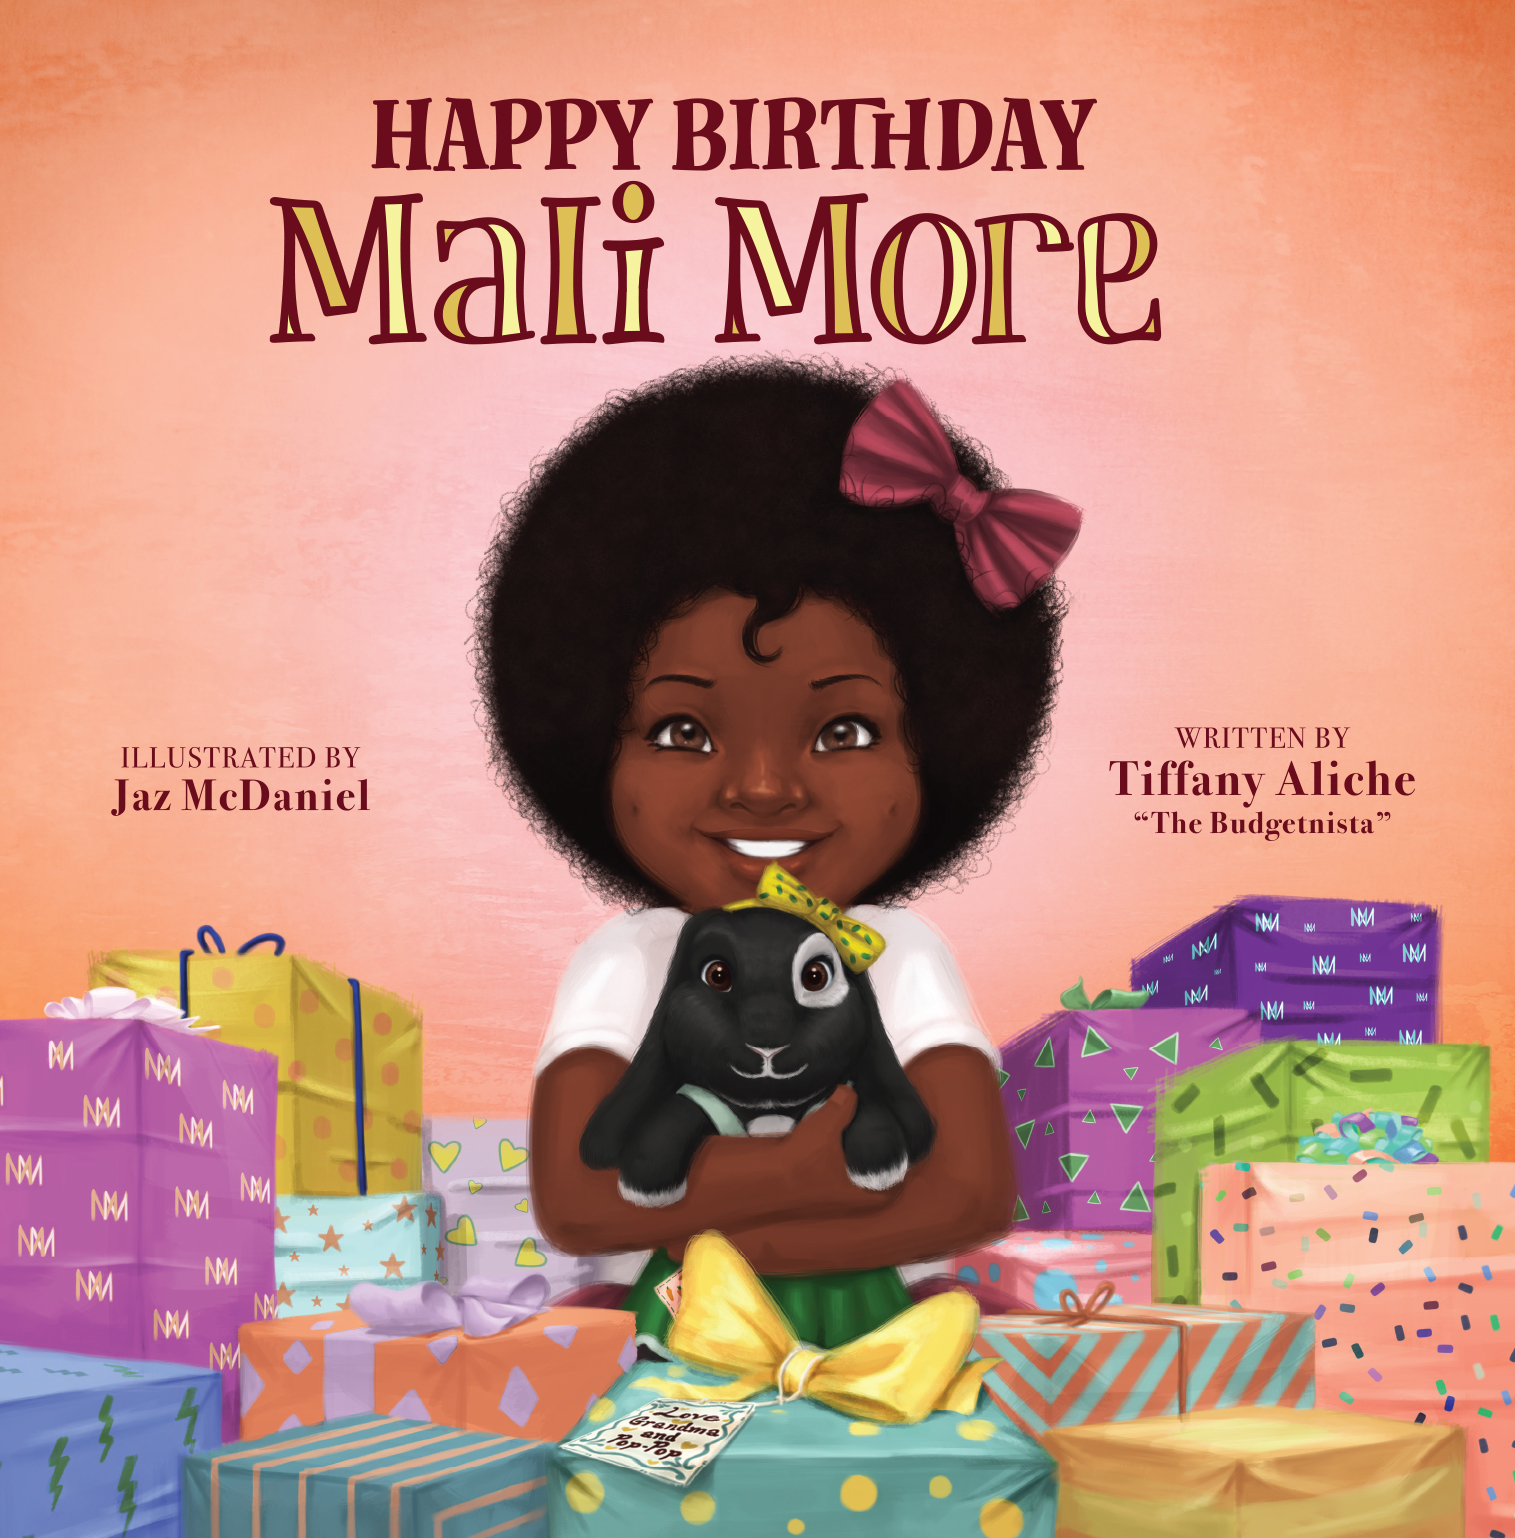 Mali More By Tiffany Aliche Mali More interior and typography design by Aurora Whittet Best